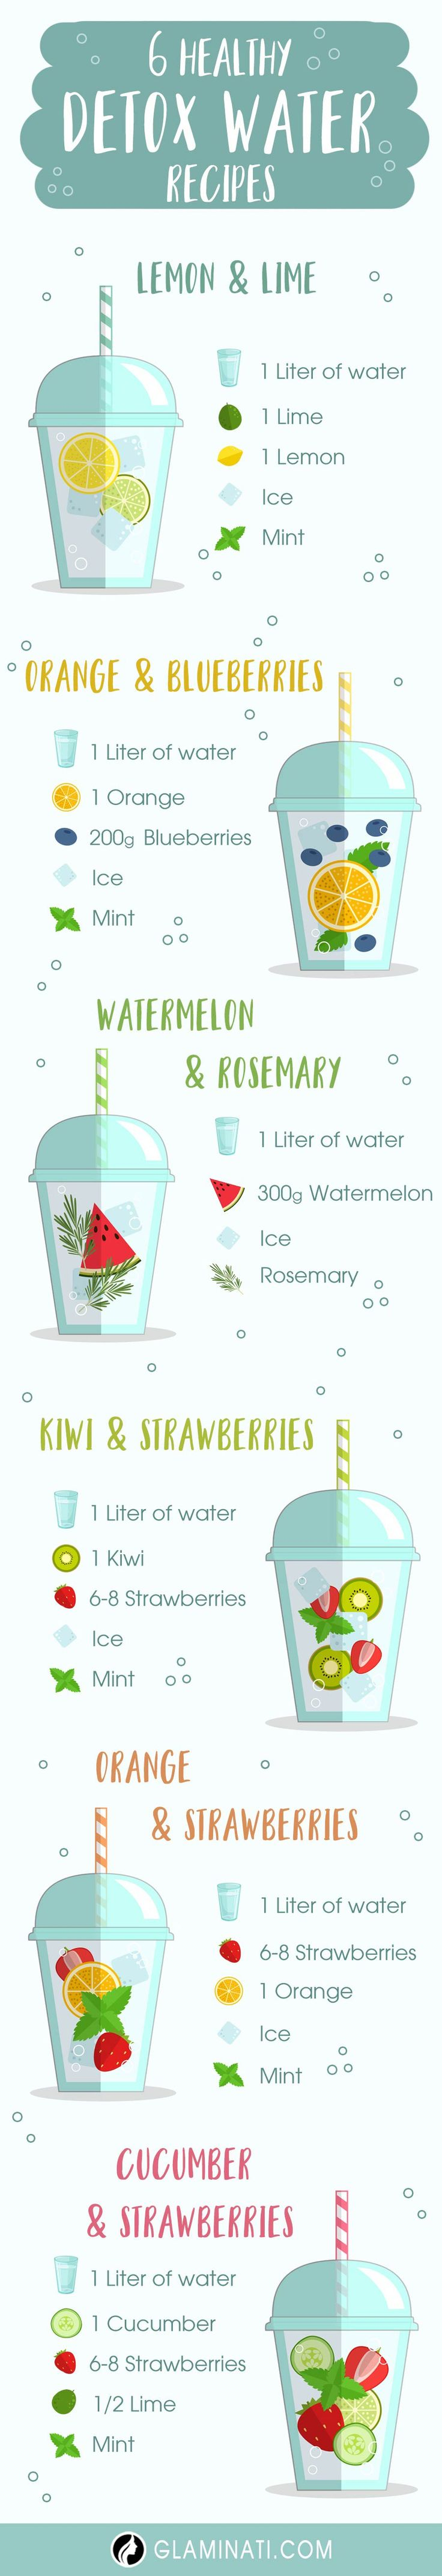 Healthy Detox Drinks: Detox Smoothies, Detox Teas and Detox Waters ★ See more: http://glaminati.com/healthy-detox-drinks-smoothie-tea-water/